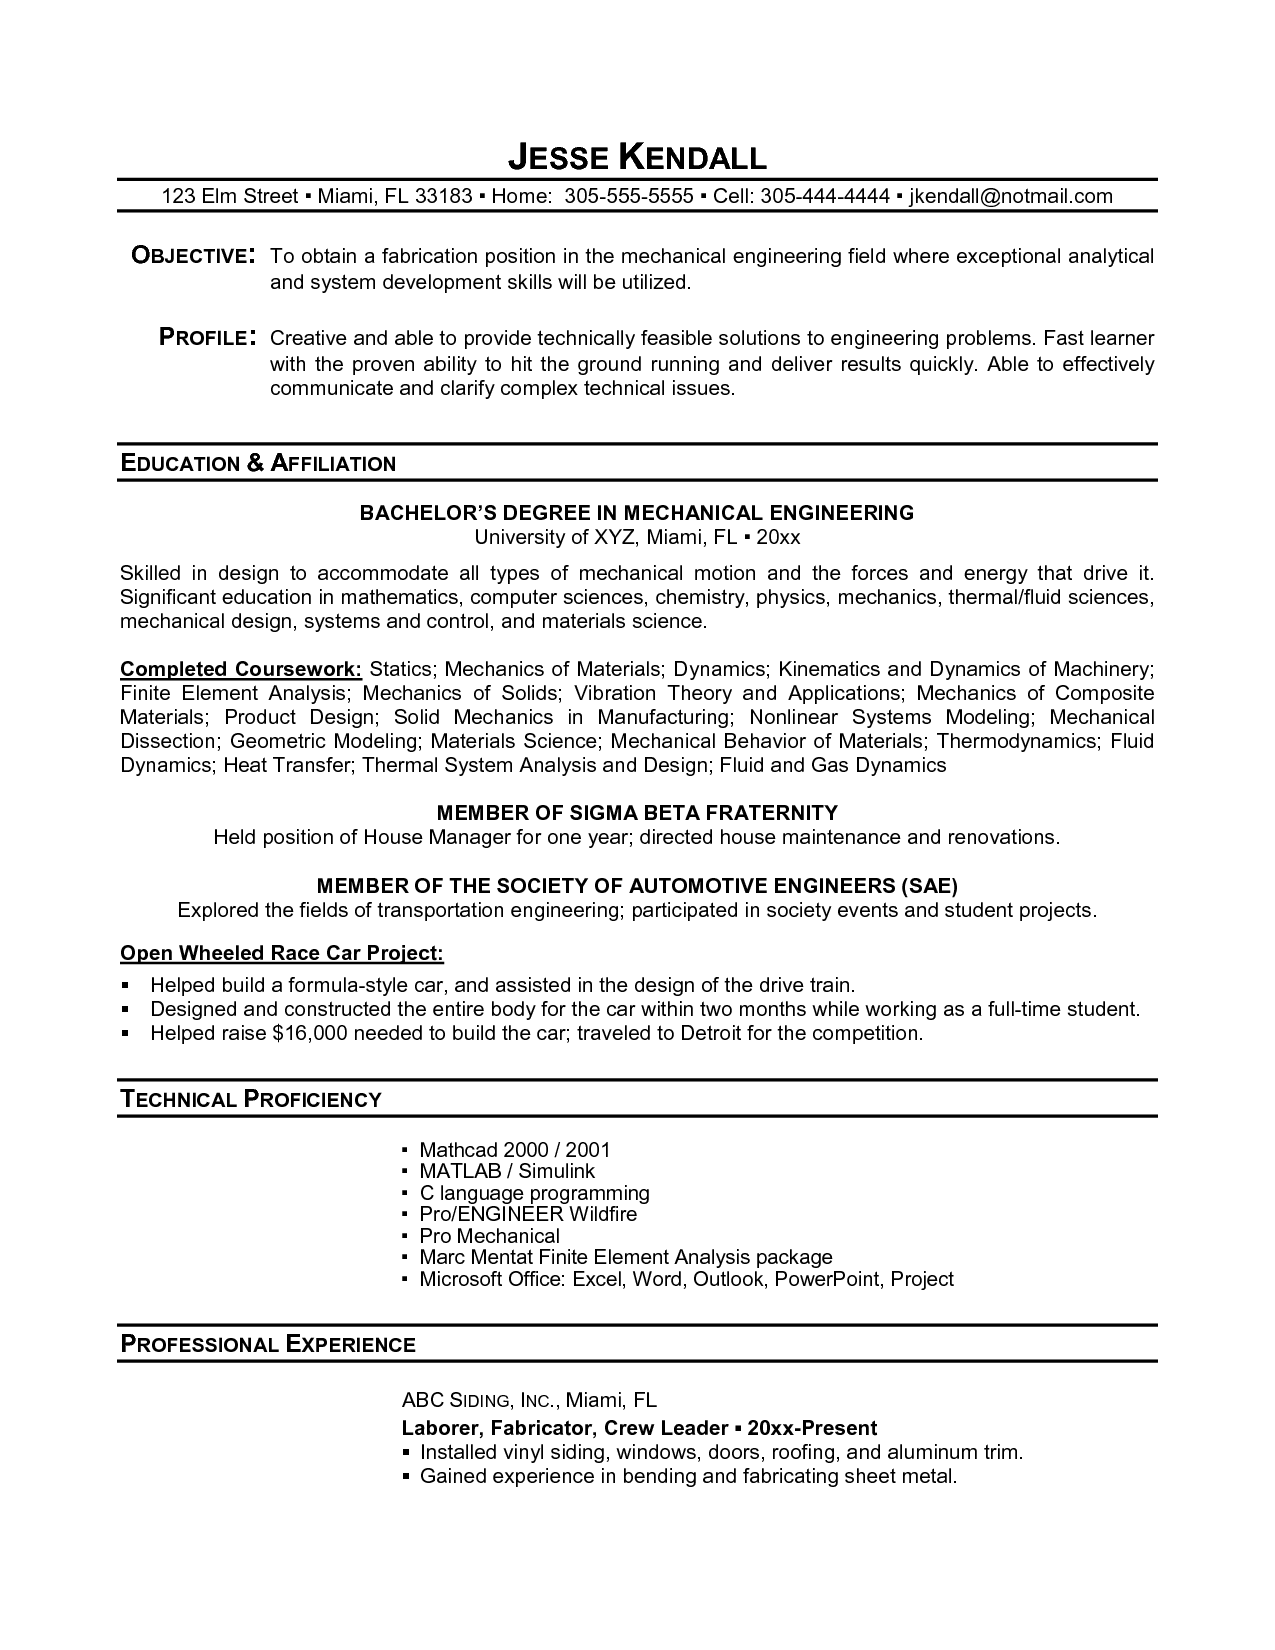 Student Resume Sample nursing student resume sample Resume Examples Student Examples Collge High School Resume Samples For Students Examples Student Resume Sample